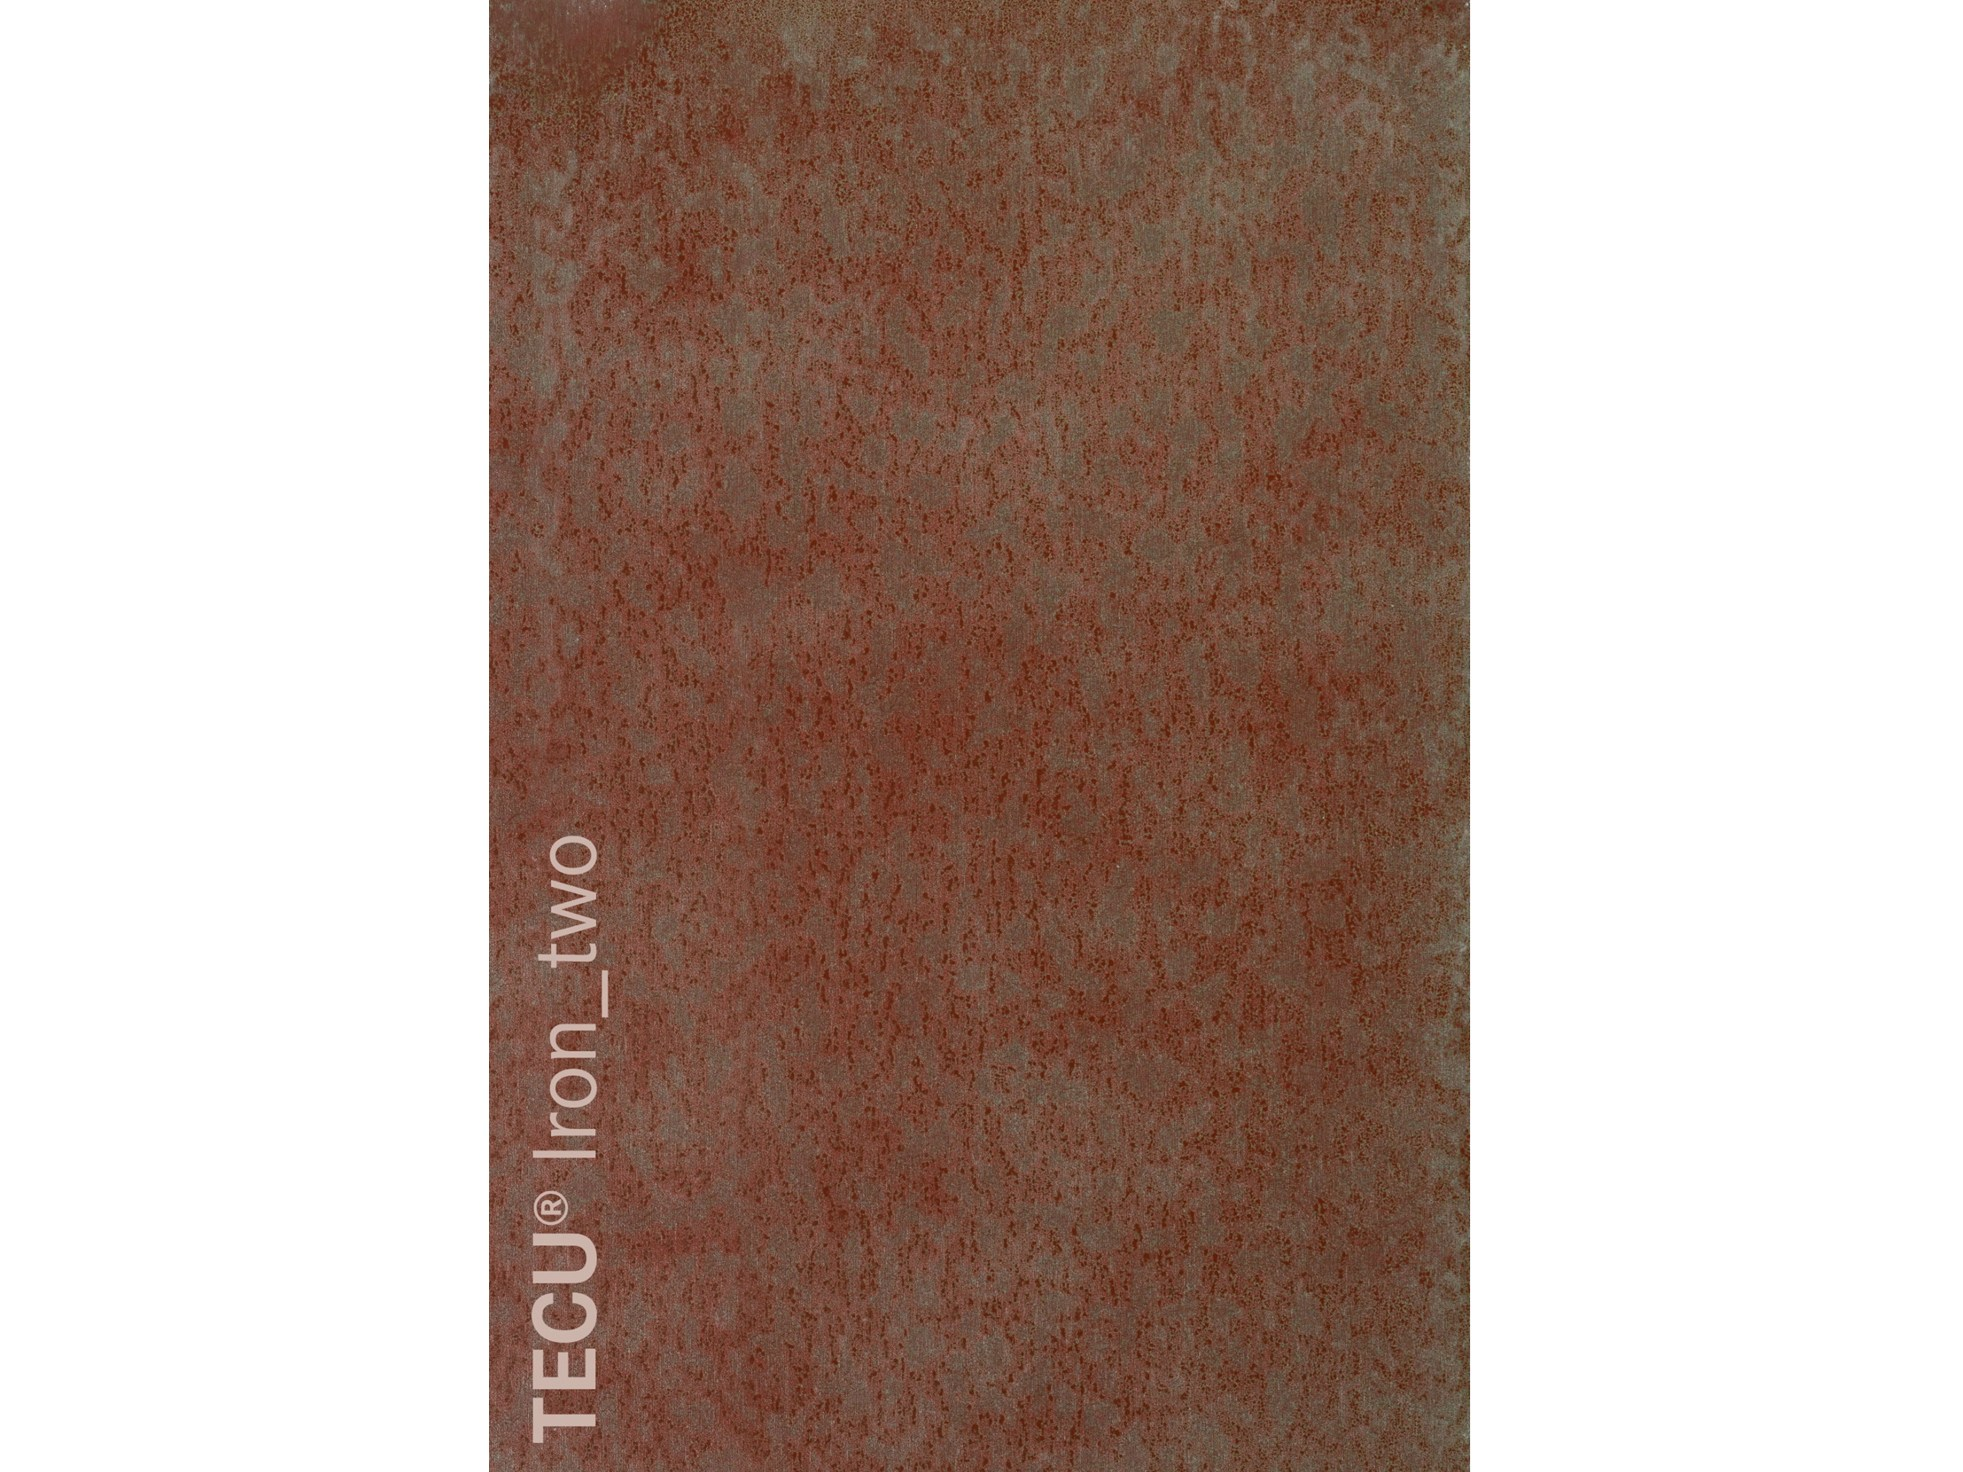 Metal Sheet And Panel For Roof Tecu 174 Iron By Kme